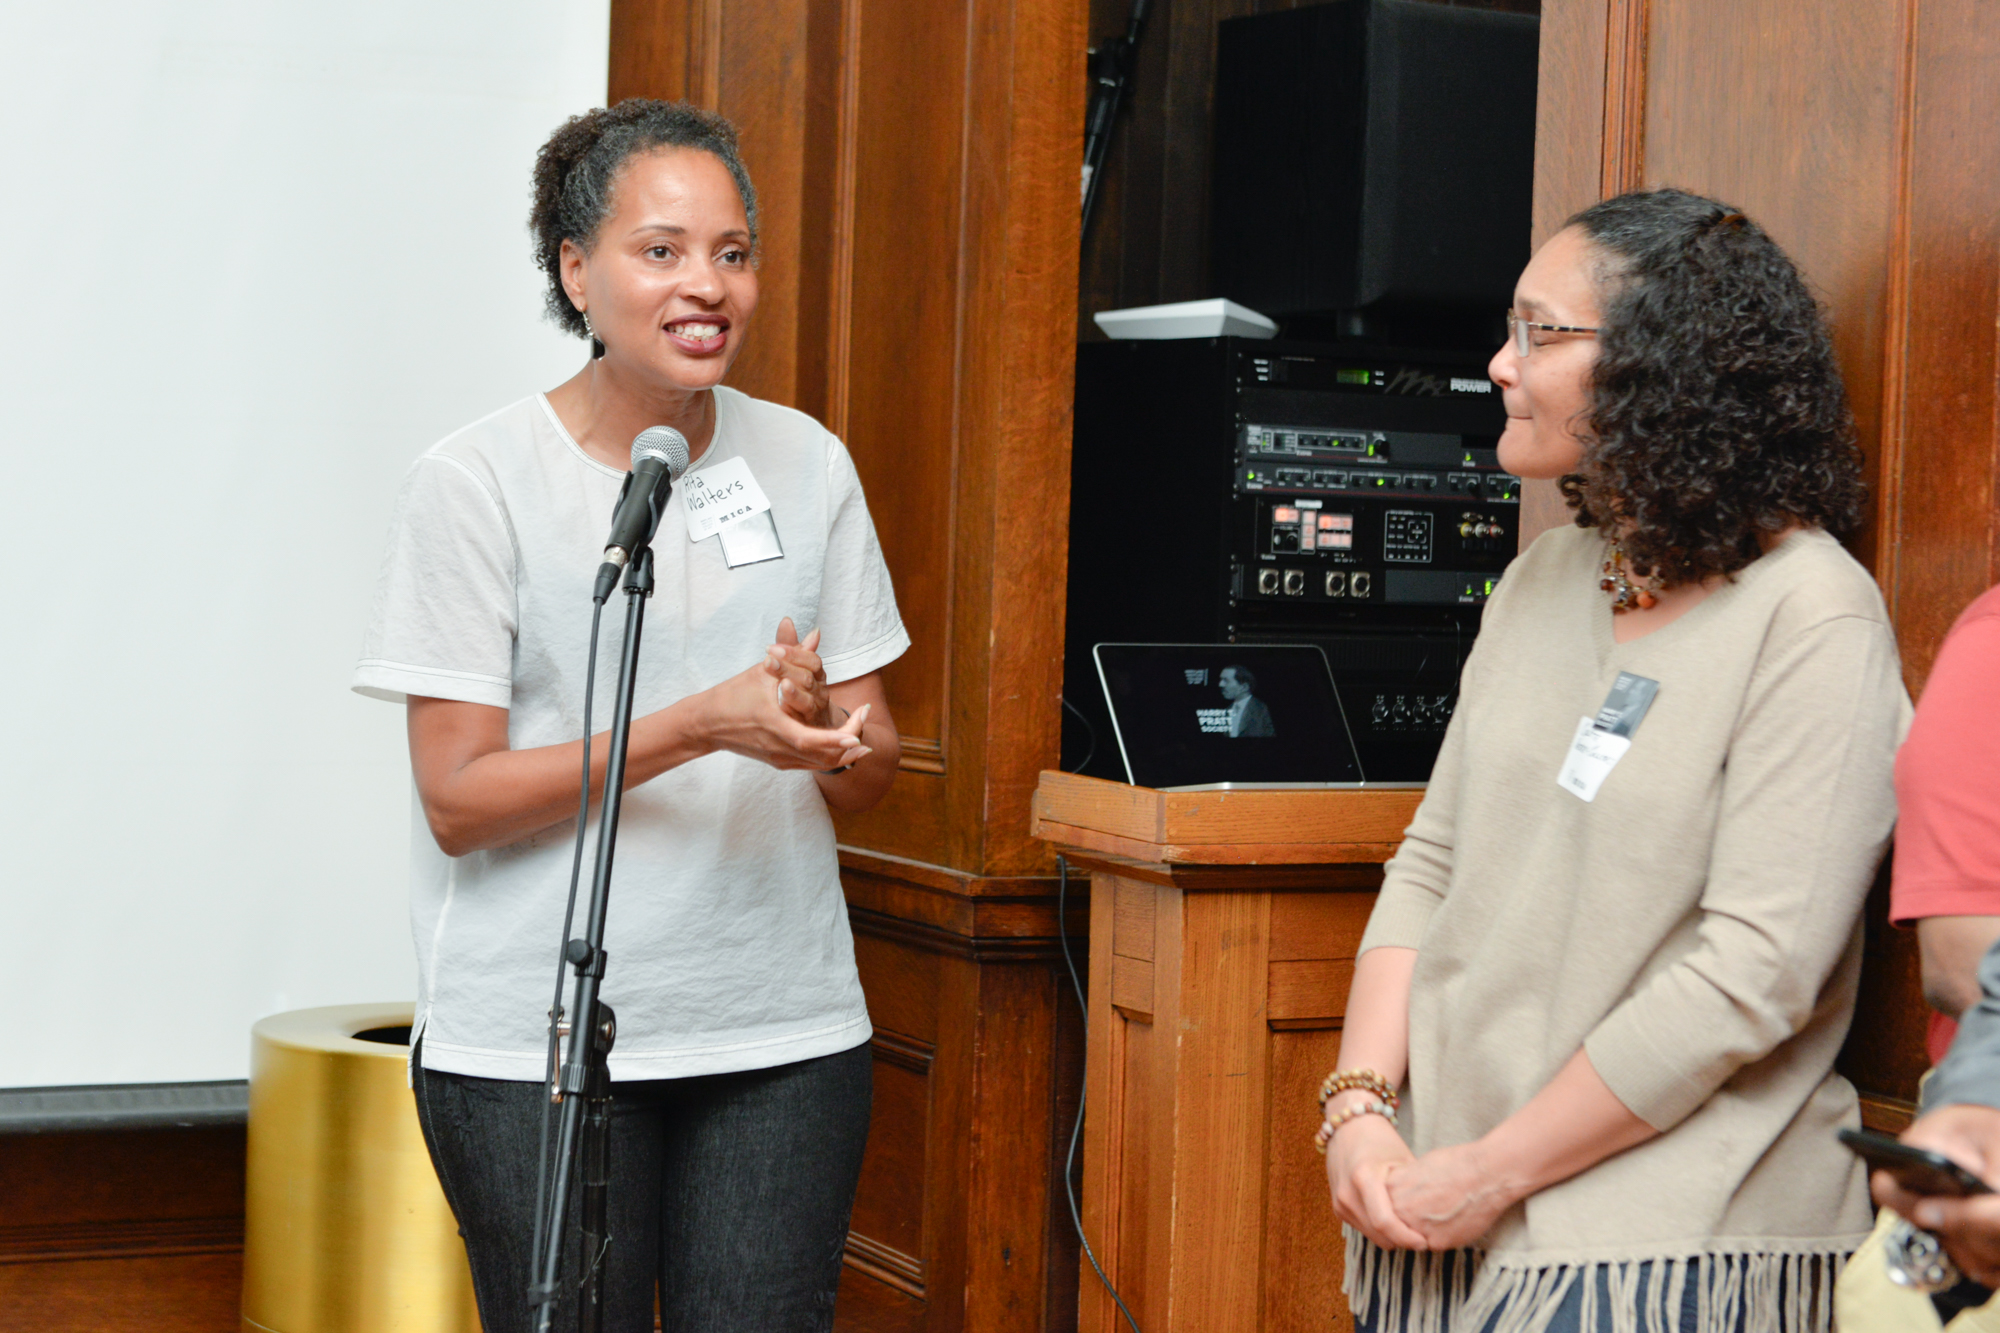 Left to Right:  Rita Walters, Former Vice President of Advancement  Colette Veasey-Cullors, Associate Dean for Design and Media, Former Department Chair - Photography